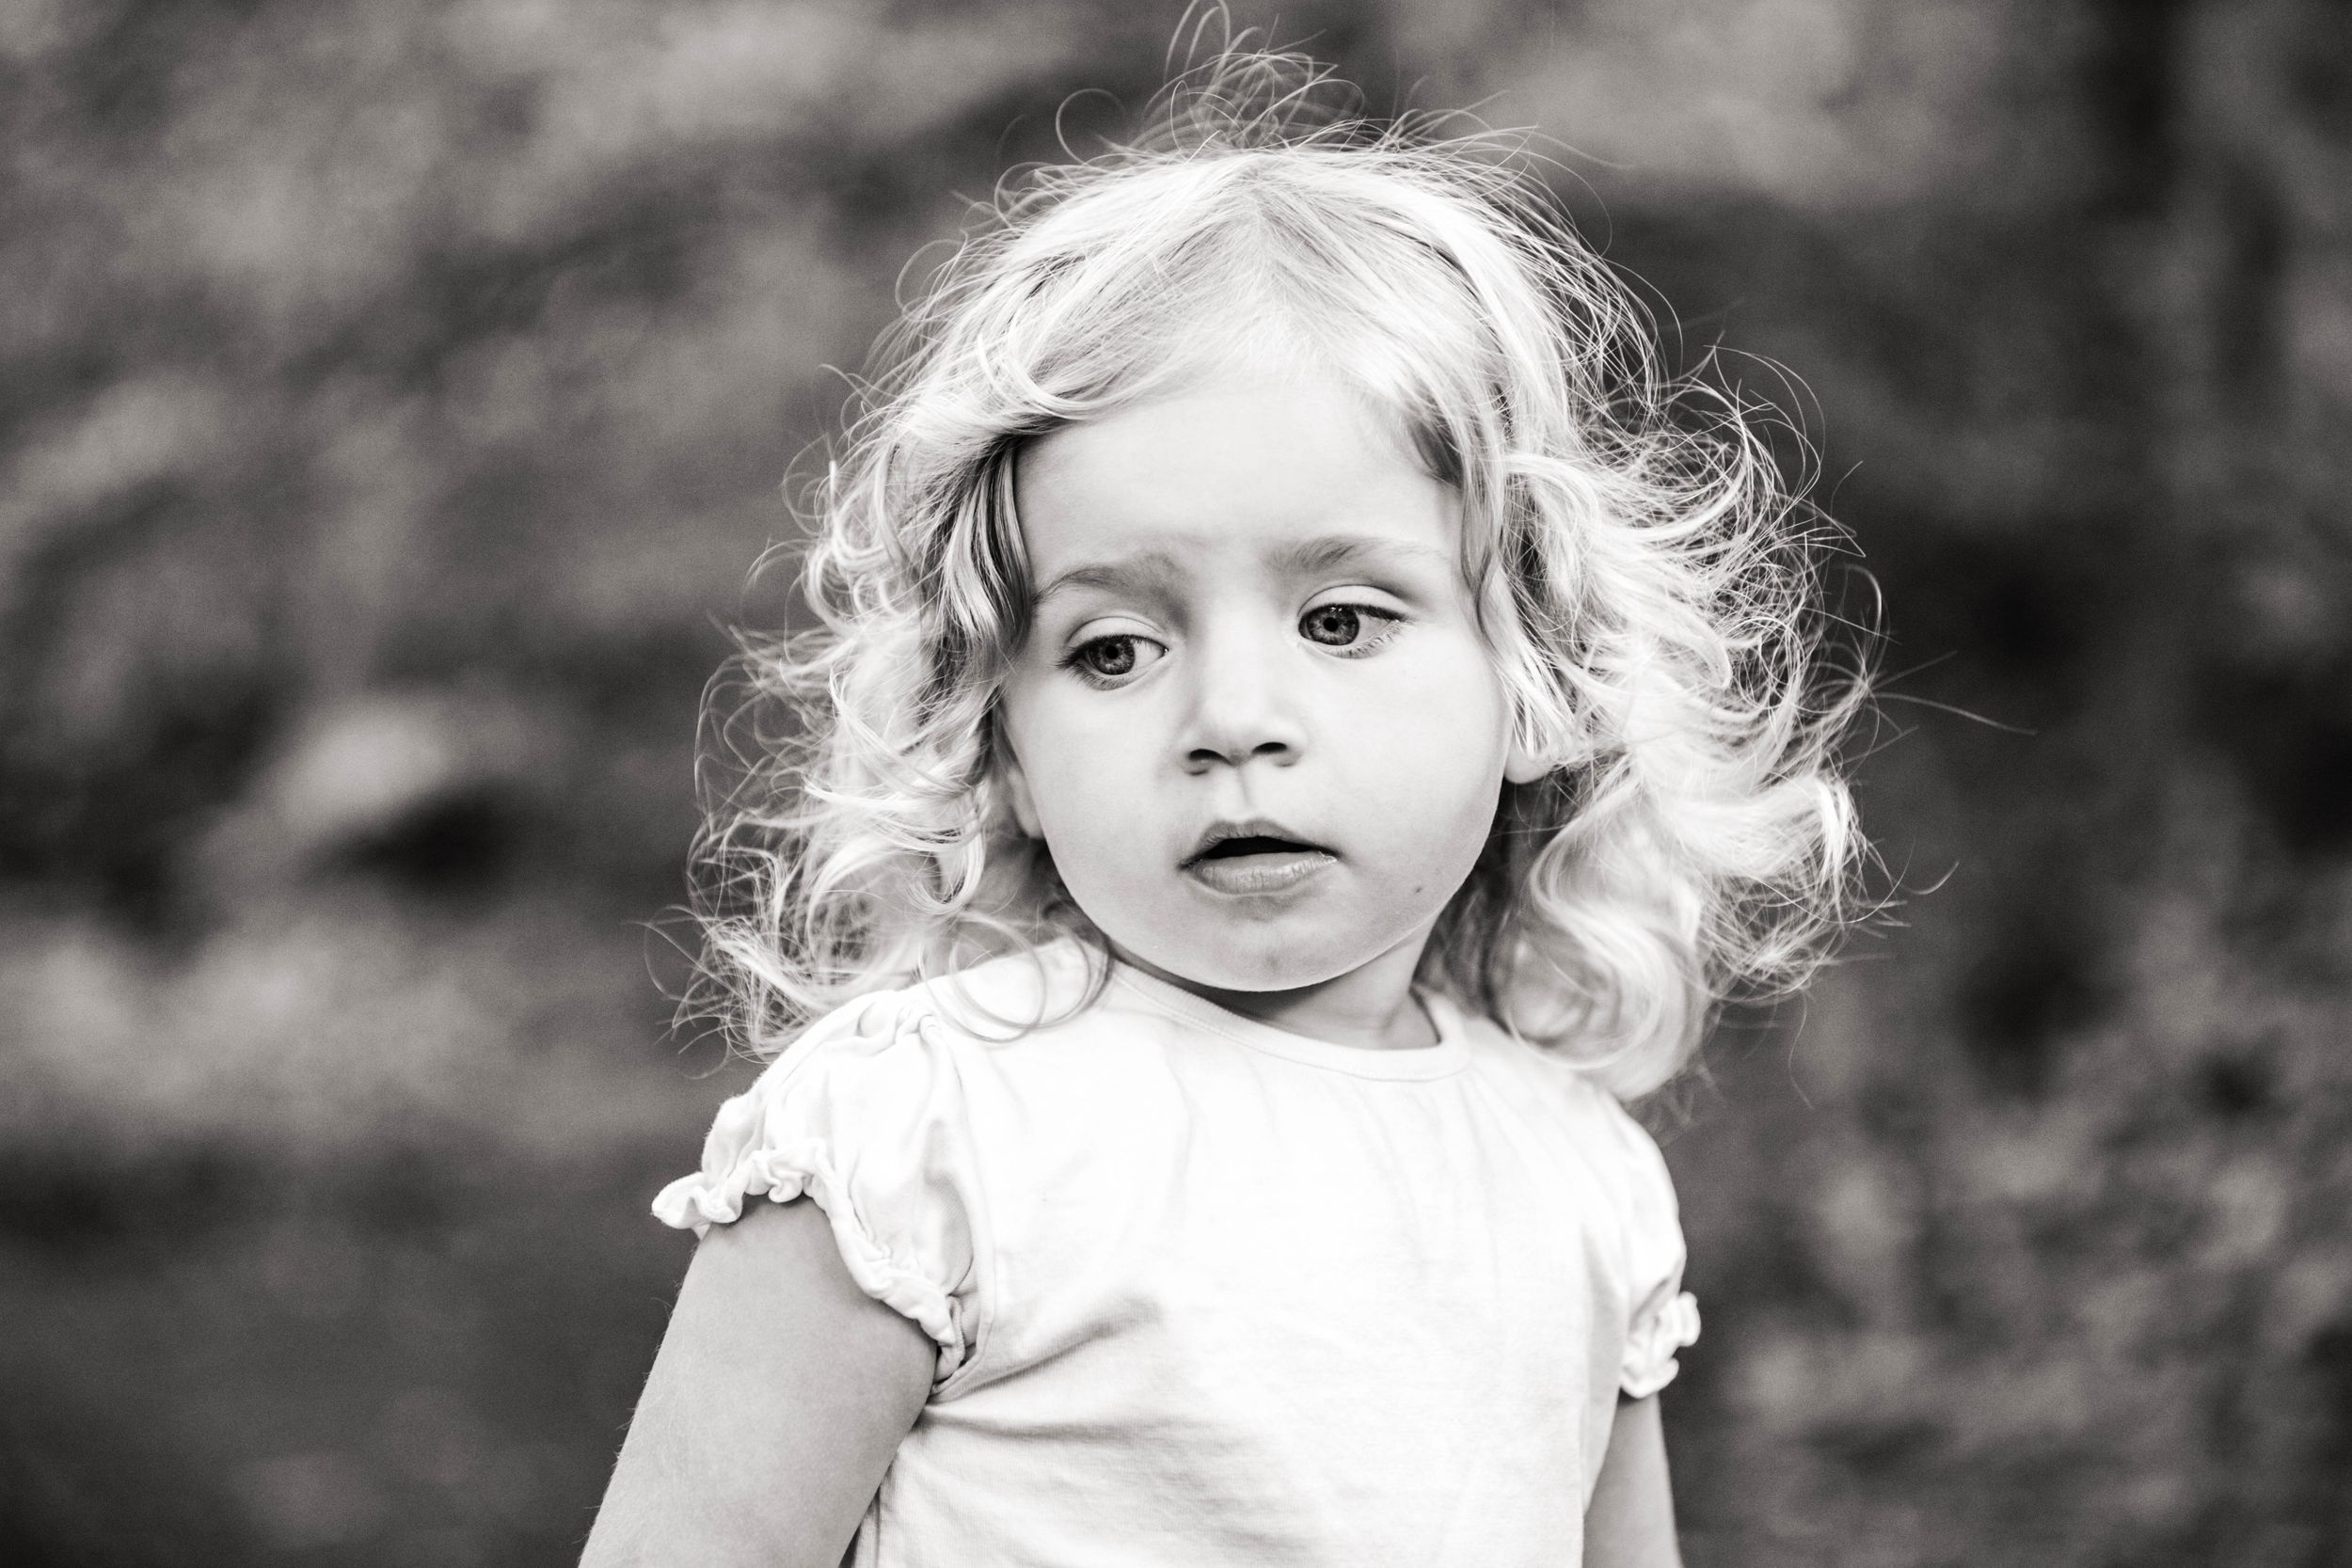 black and white portrait of little blonde haired toddler girl